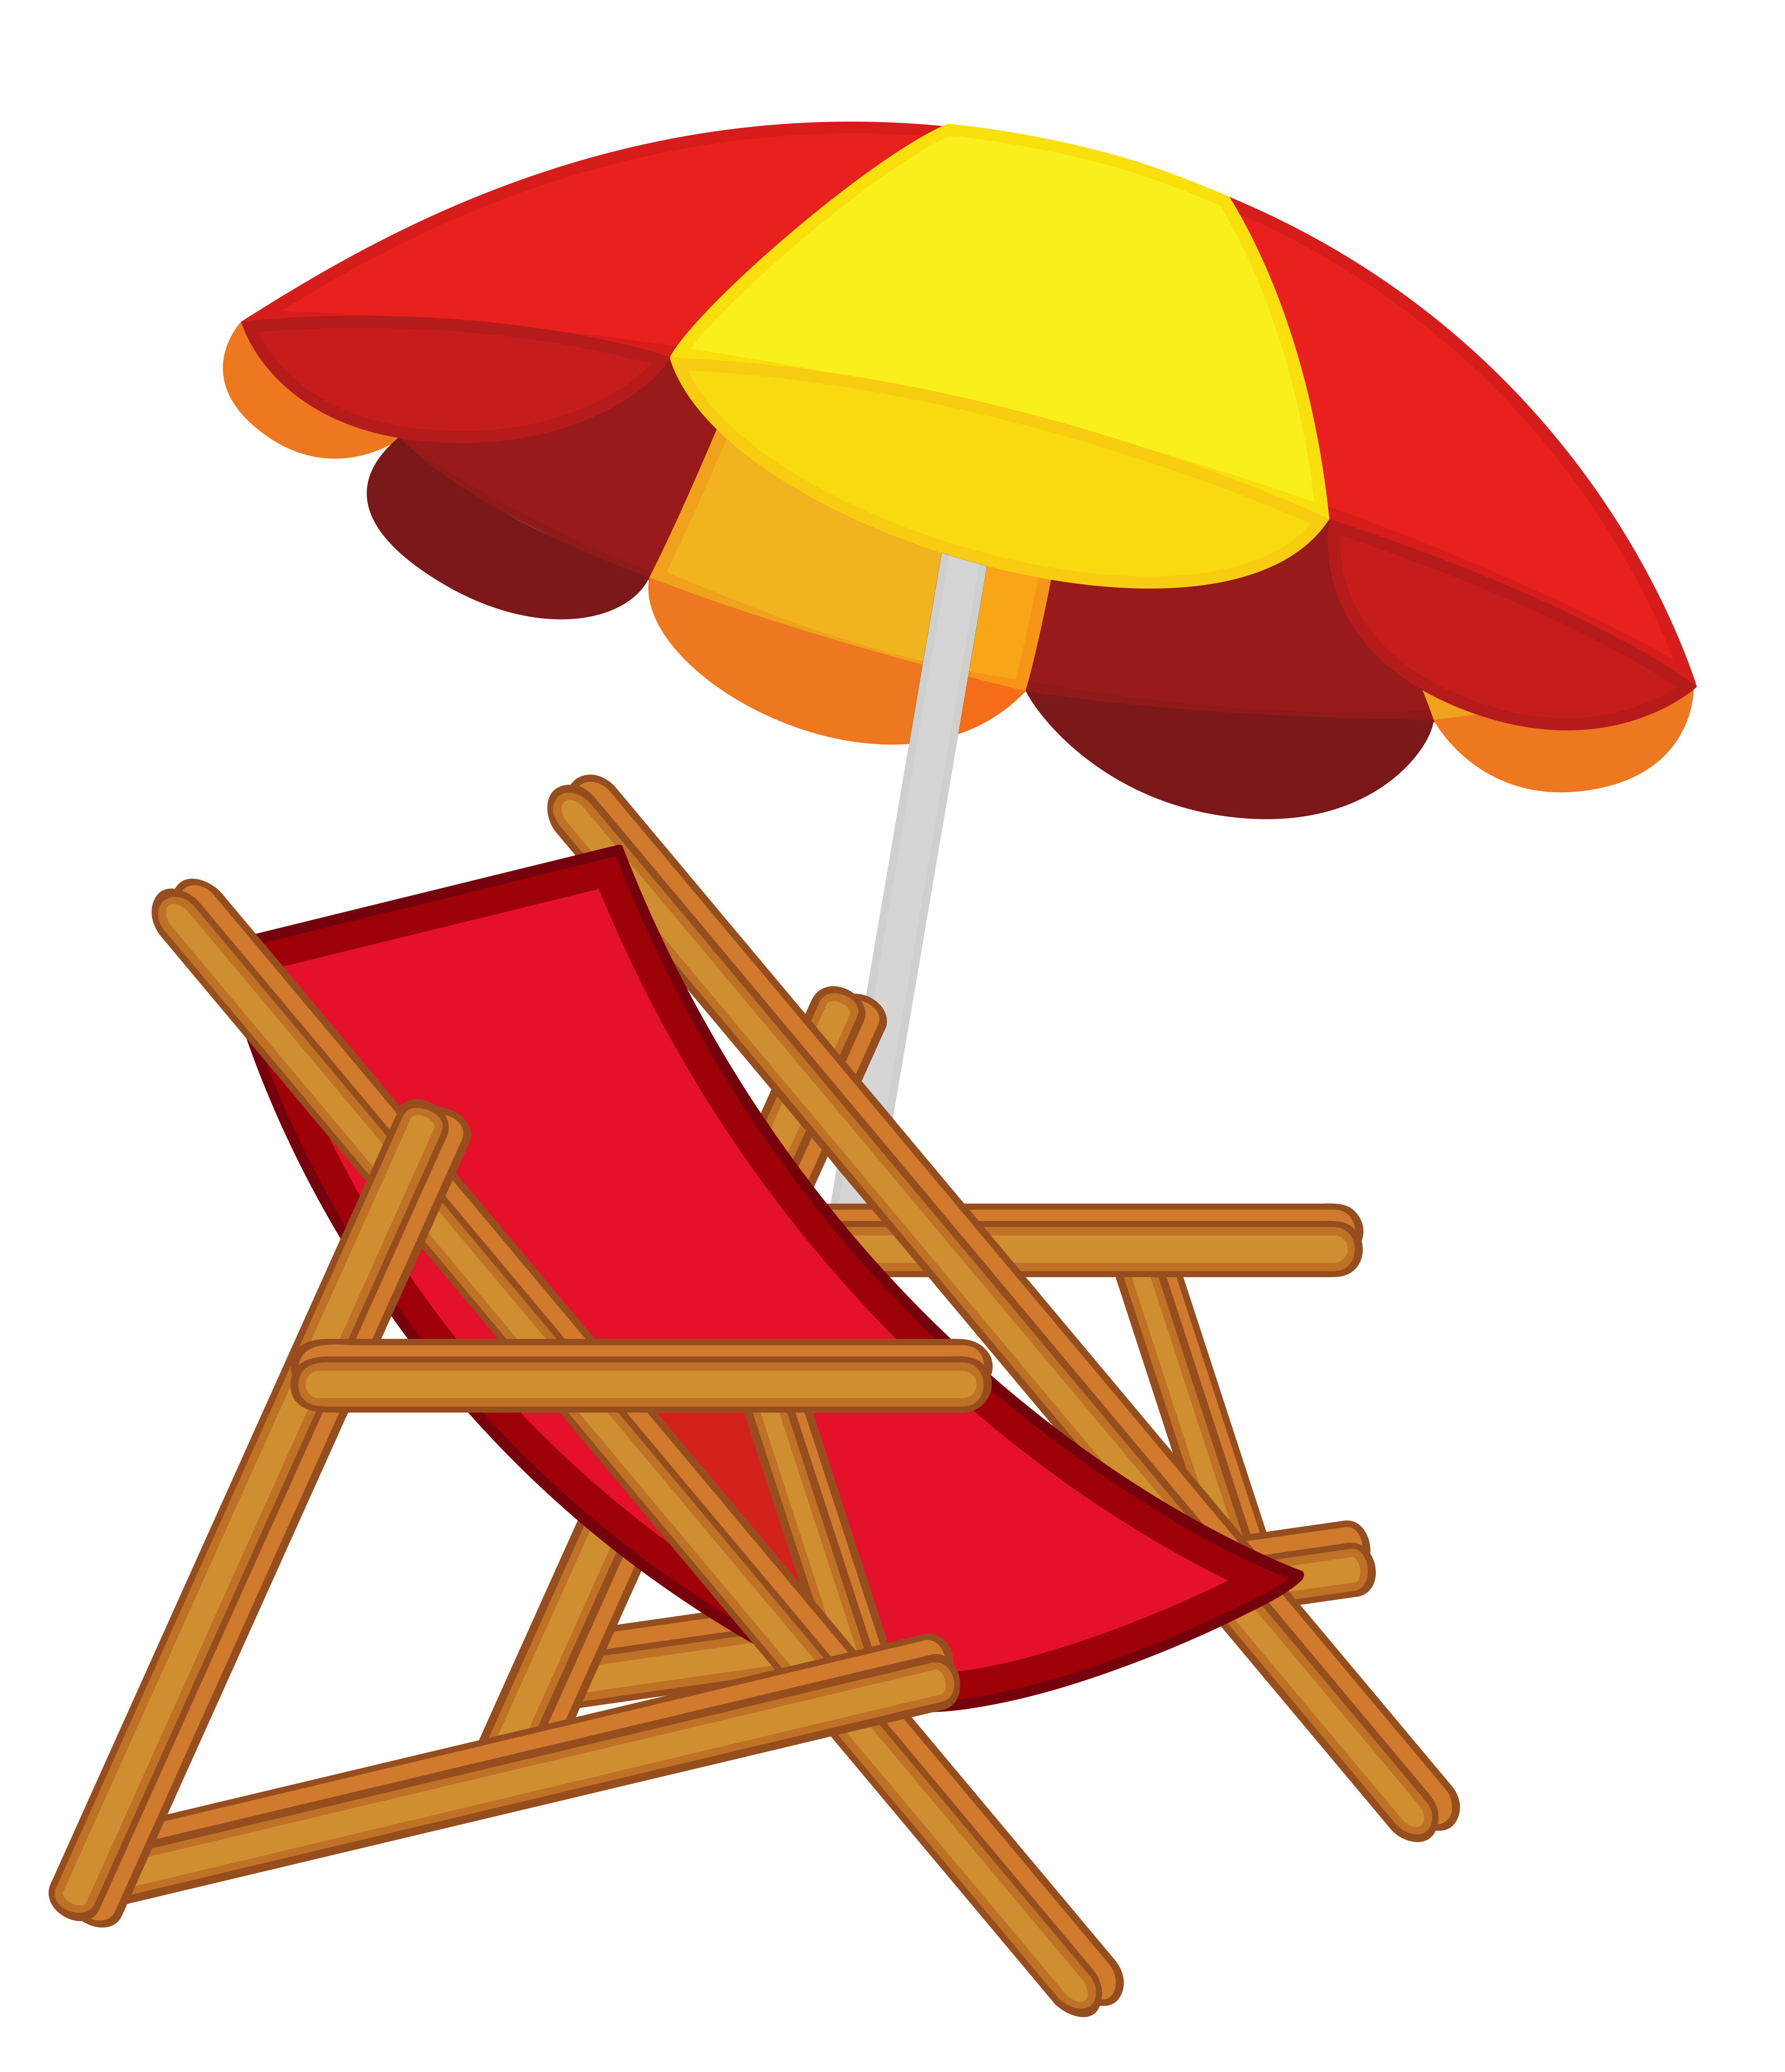 Vacation clipart beach chair Image with PNG High Gallery